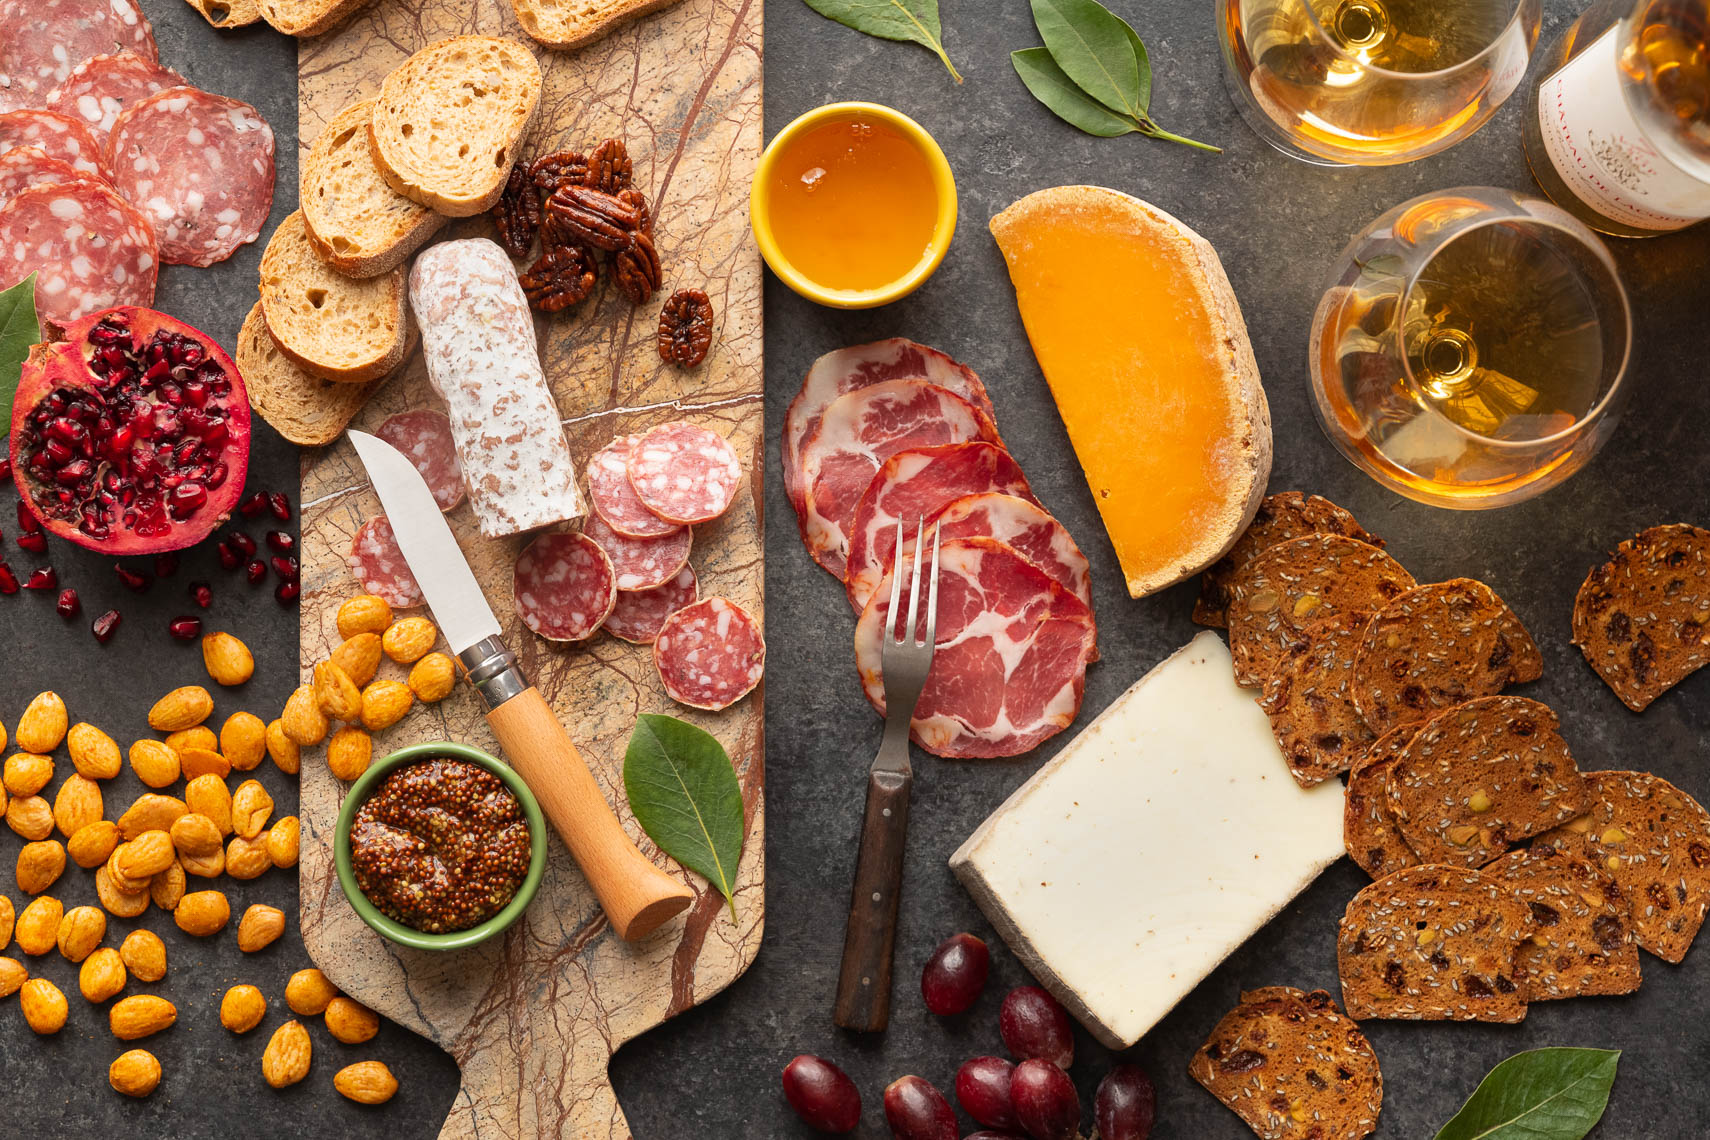 Charcuterie & Cheese - Food Photographer Pittsburgh, PA